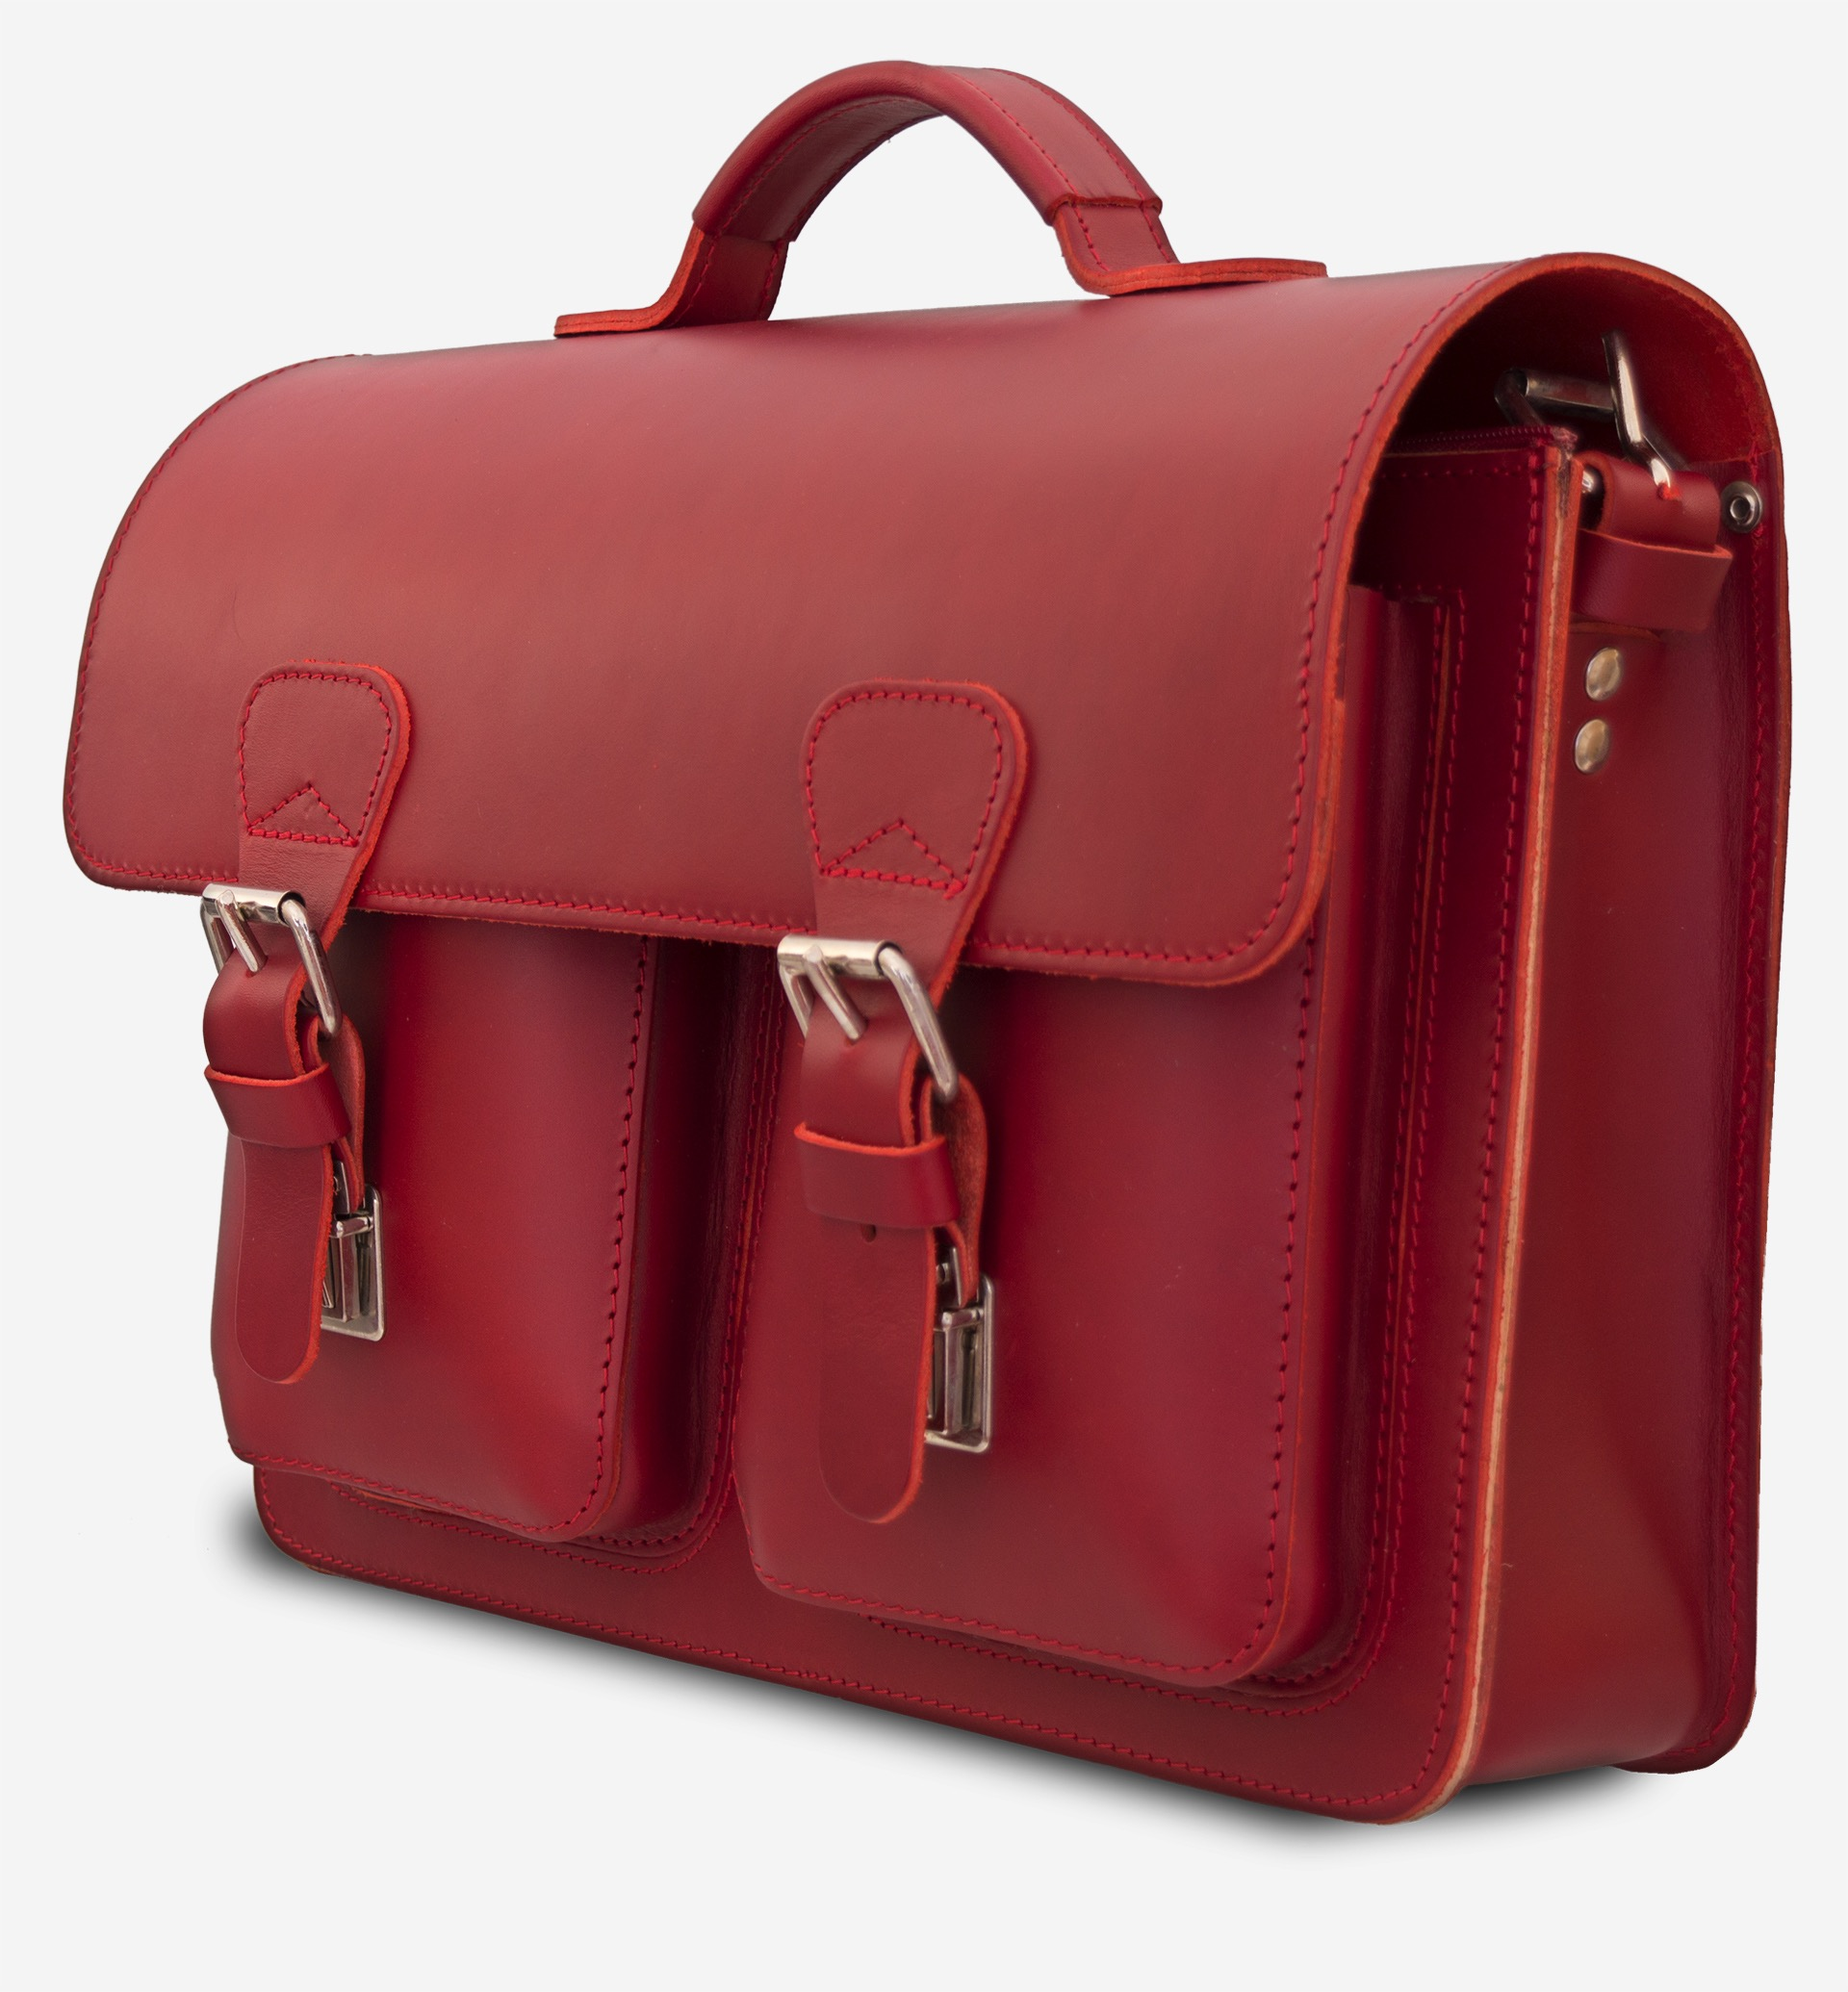 Side View Of Red Leather Briefcase Bag With 1 Compartment For Women 152131